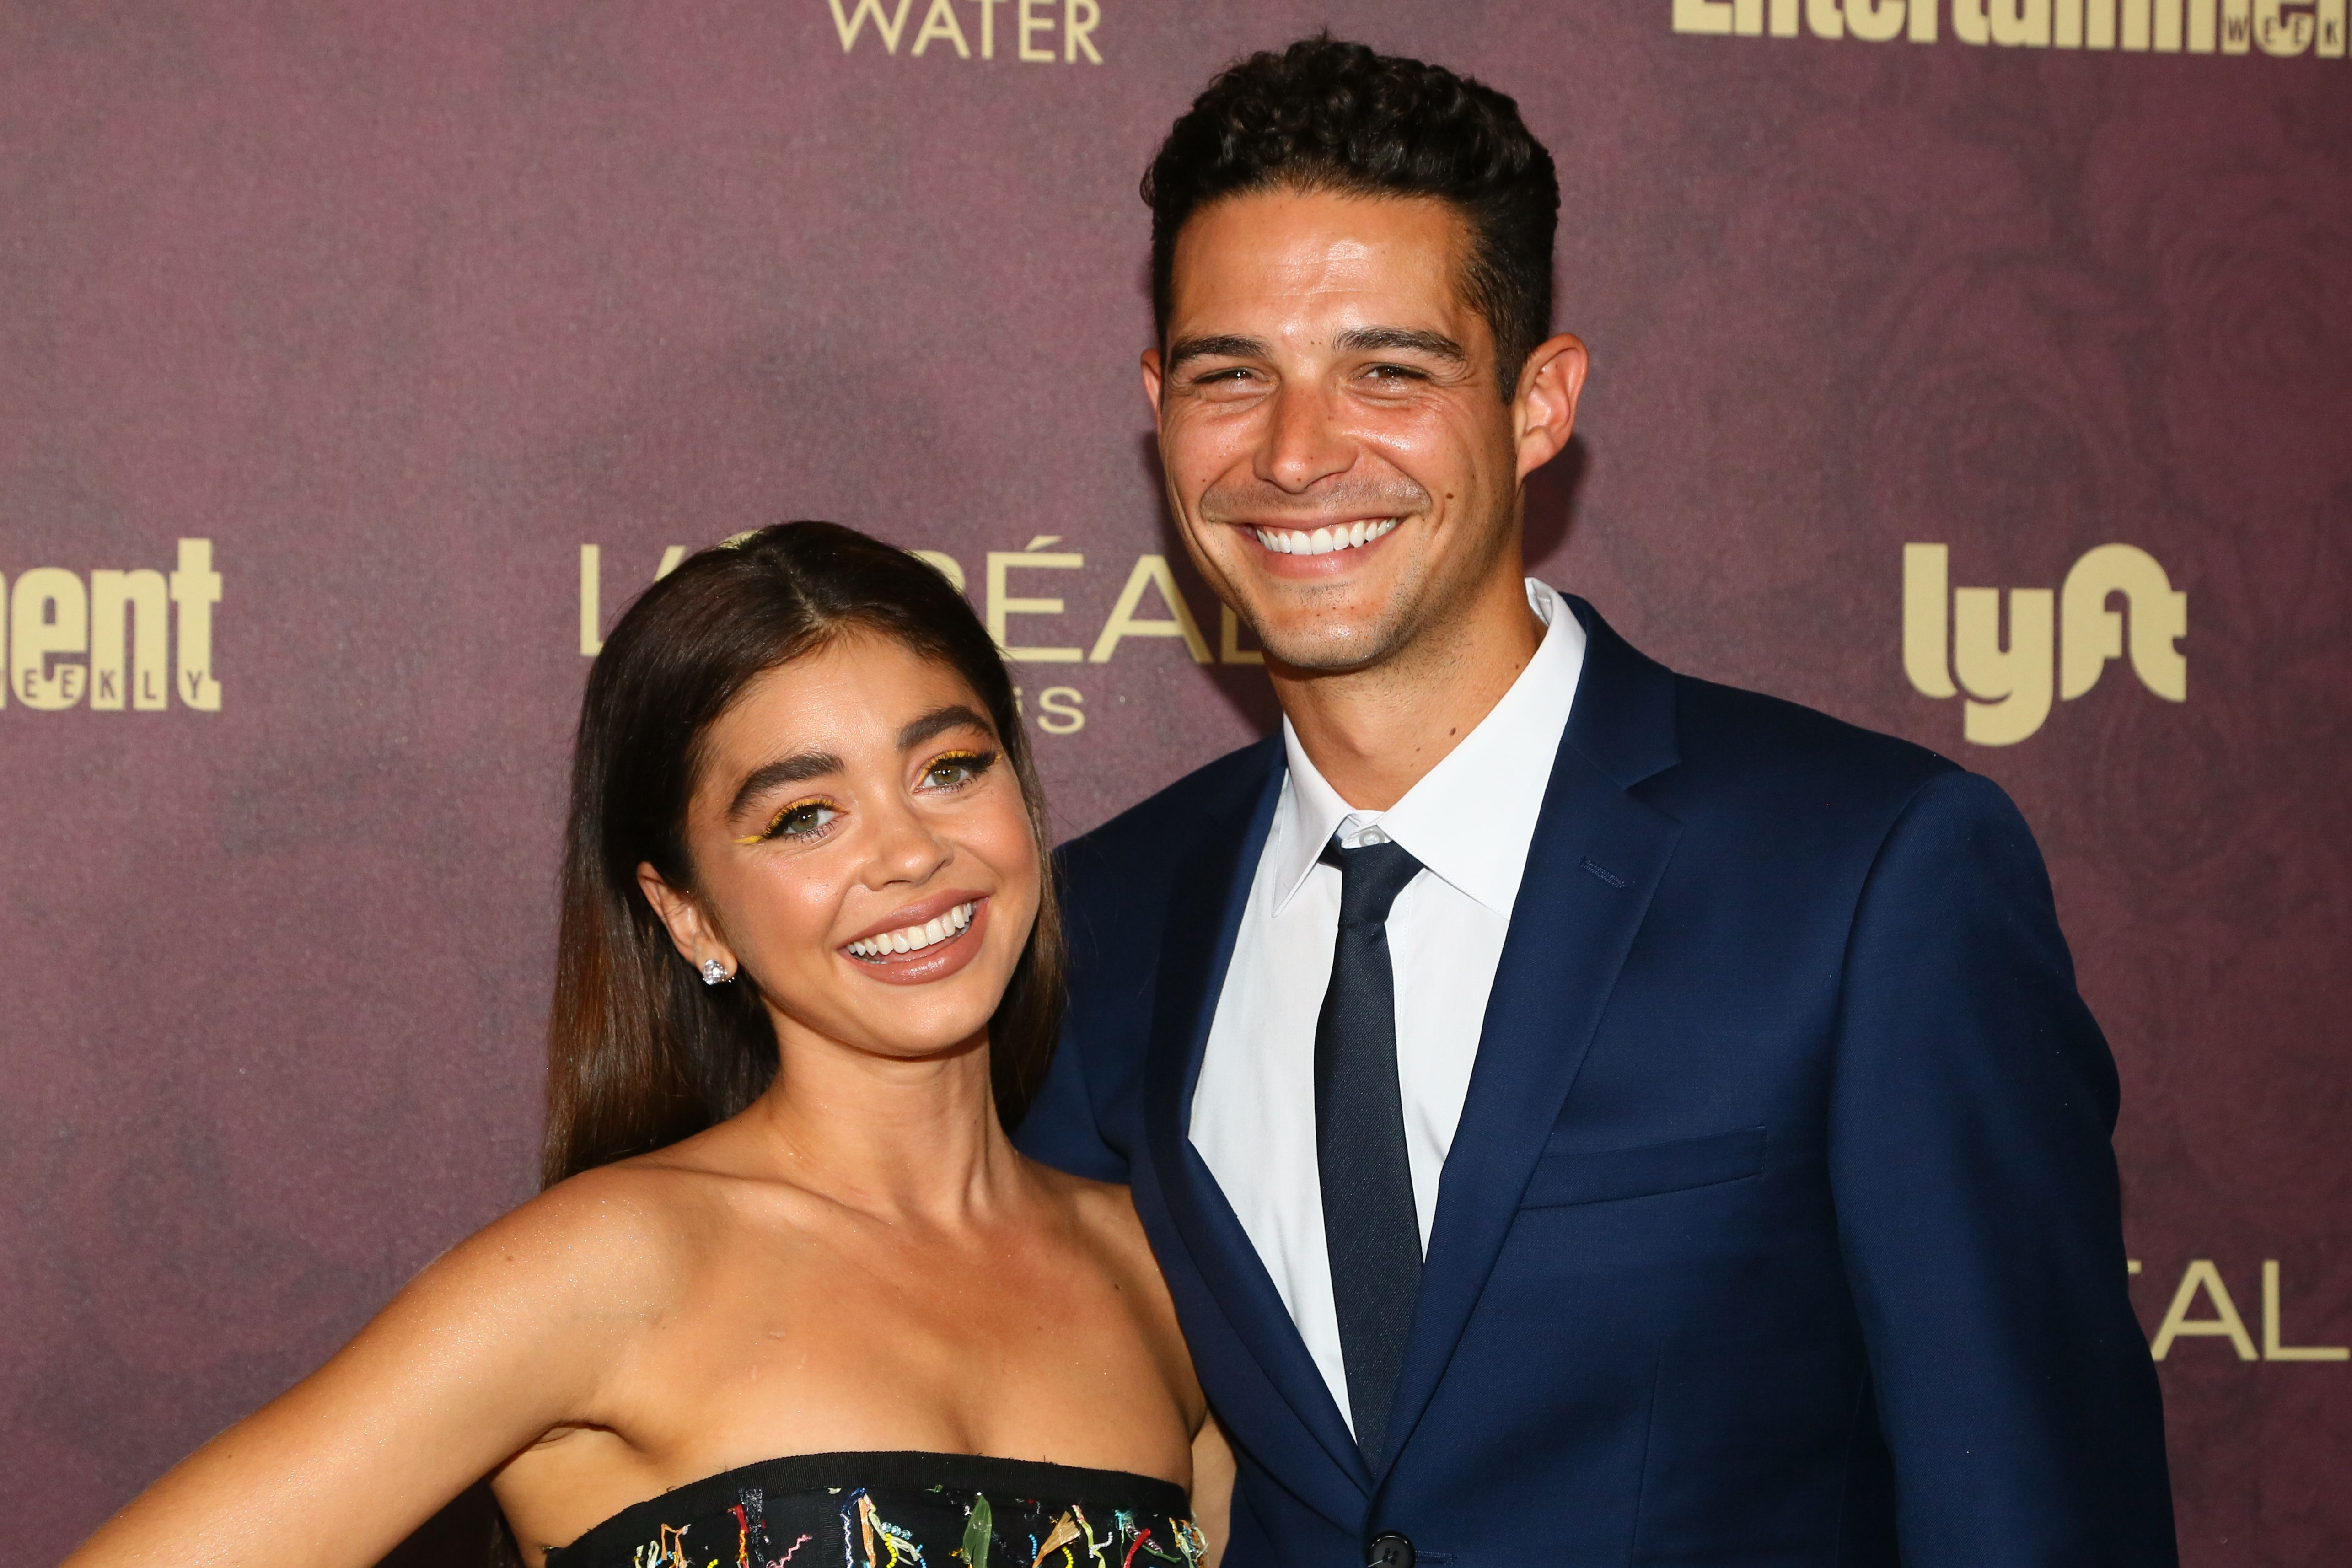 Sarah Hyland and Wells Adams at the 2018 Entertainment Weekly Pre-Emmy Party in West Hollywood | Source: Getty Images